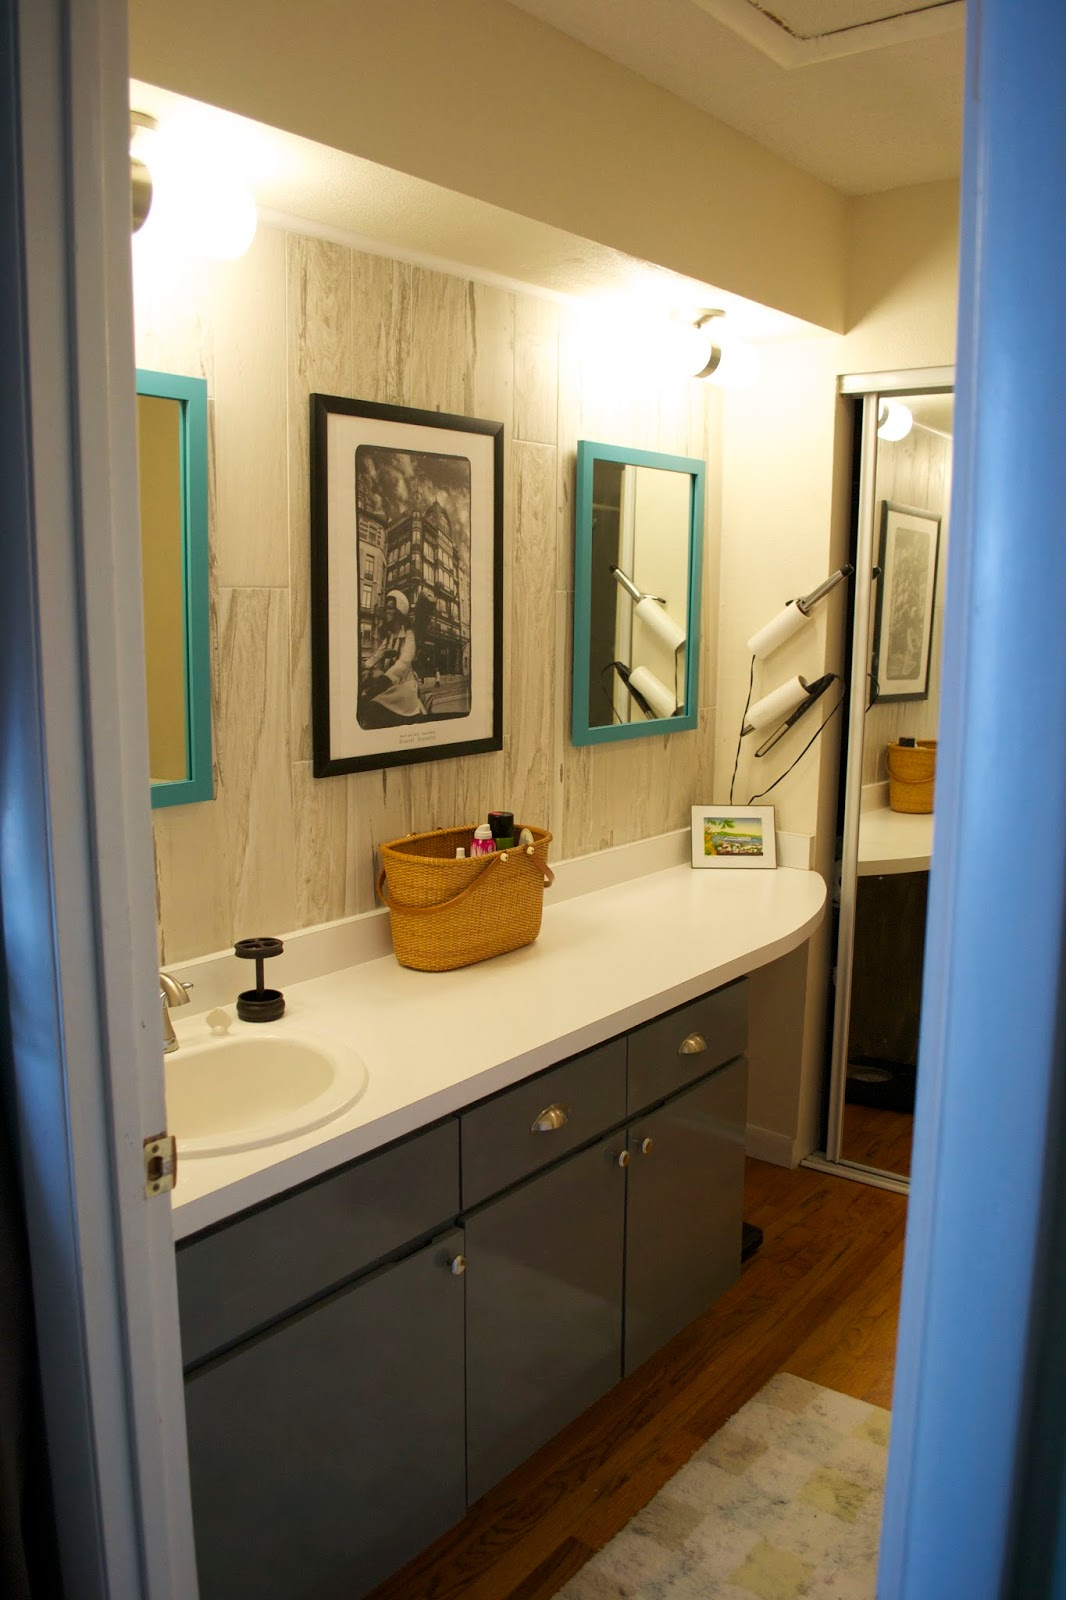 Good I finally found similar ones at Lowe us by Style Selections that were close enough for our purposes At piece they were perfect for a bathroom getting a